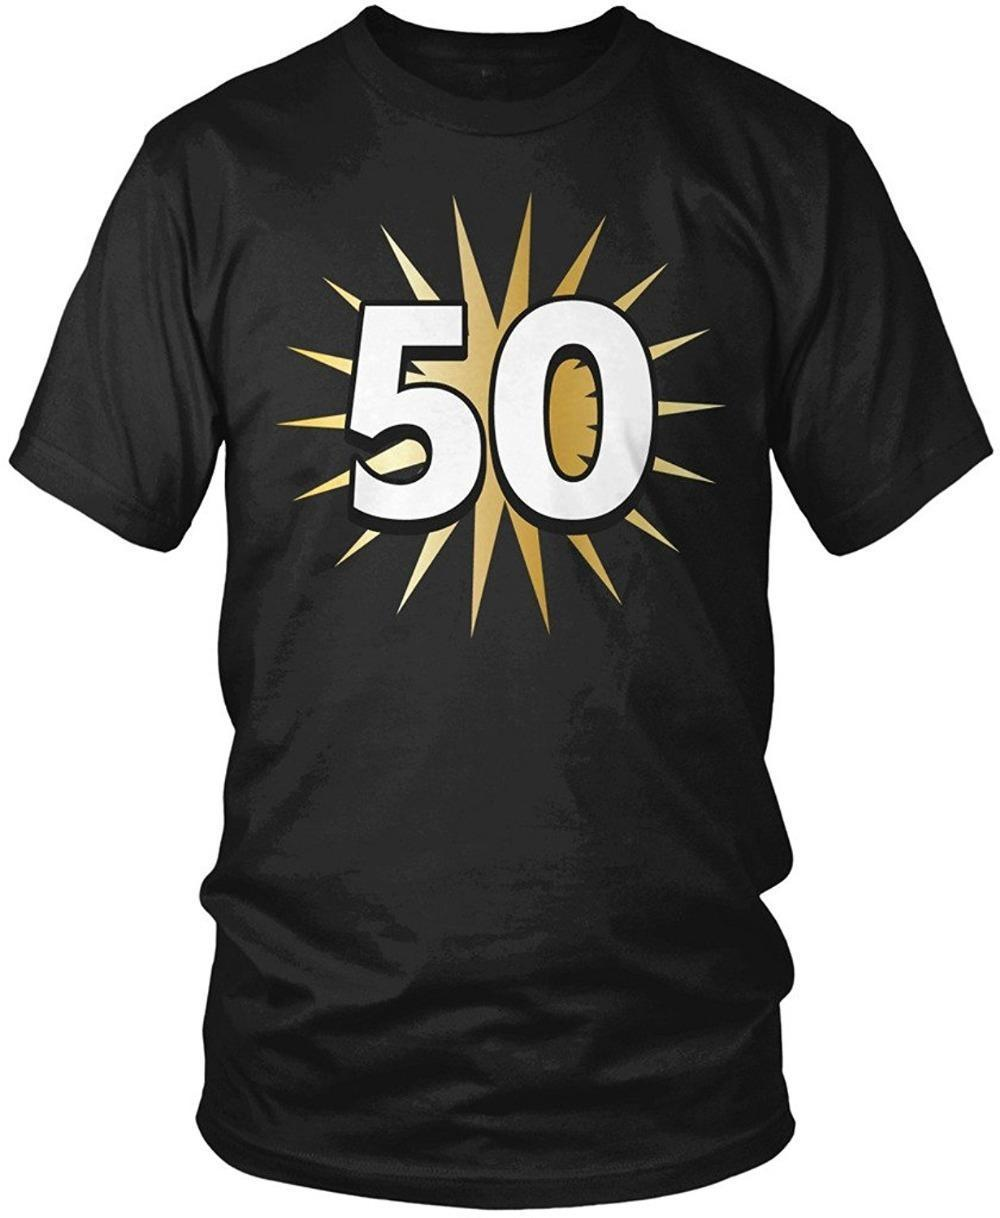 Personalized Shirts Short Sleeve Gift 50Th Birthday Shirt 50 Years Old Fiftieth Men S T Crew Neck For